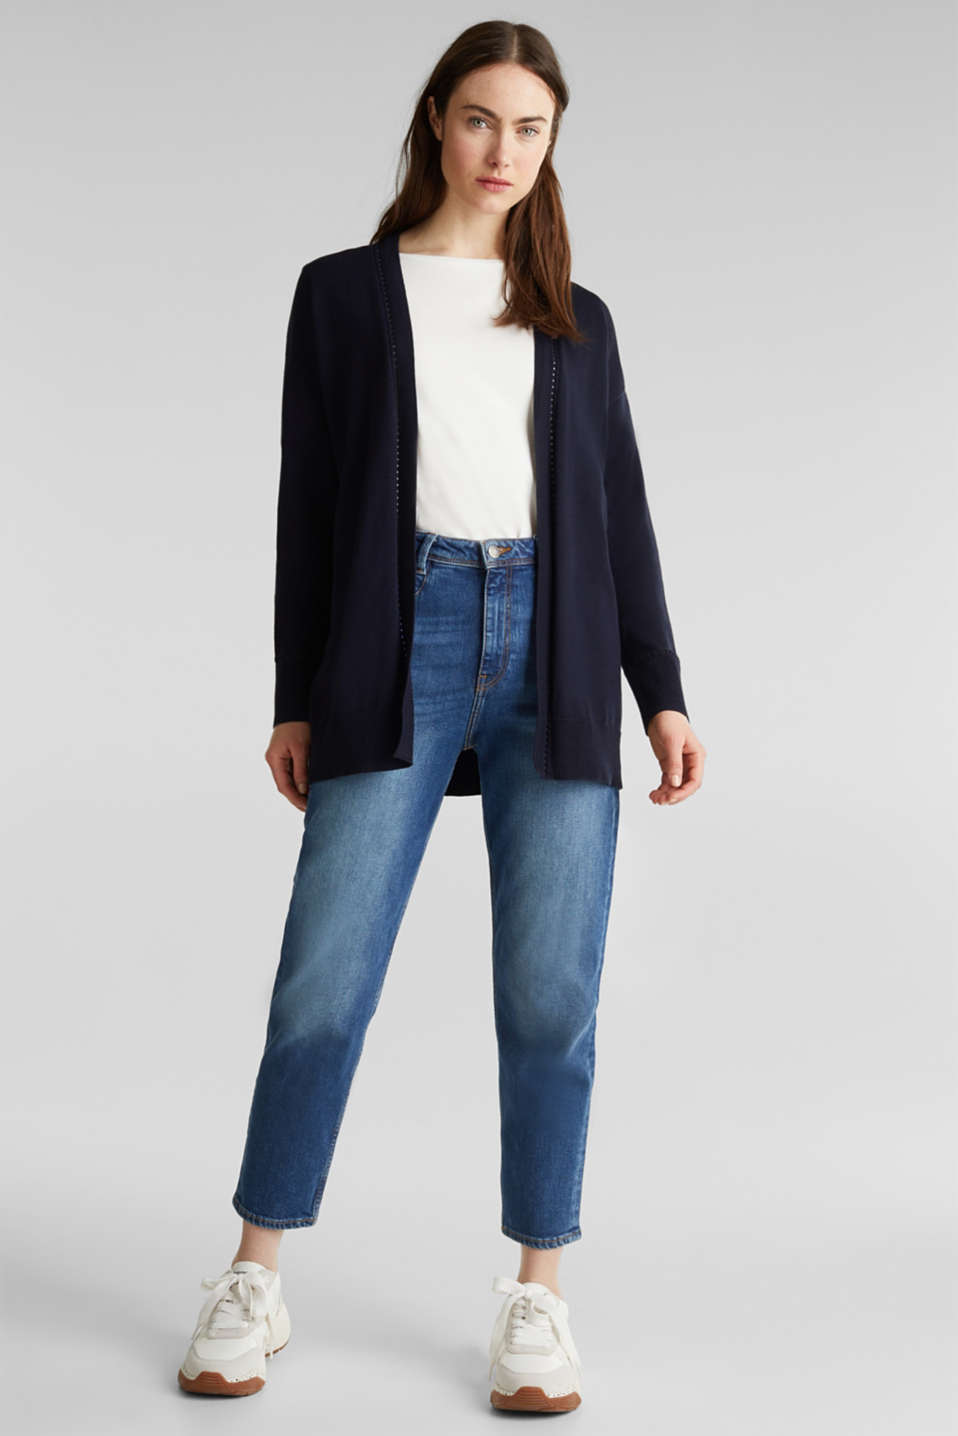 Cardigan with open-work pattern details, NAVY, detail image number 1